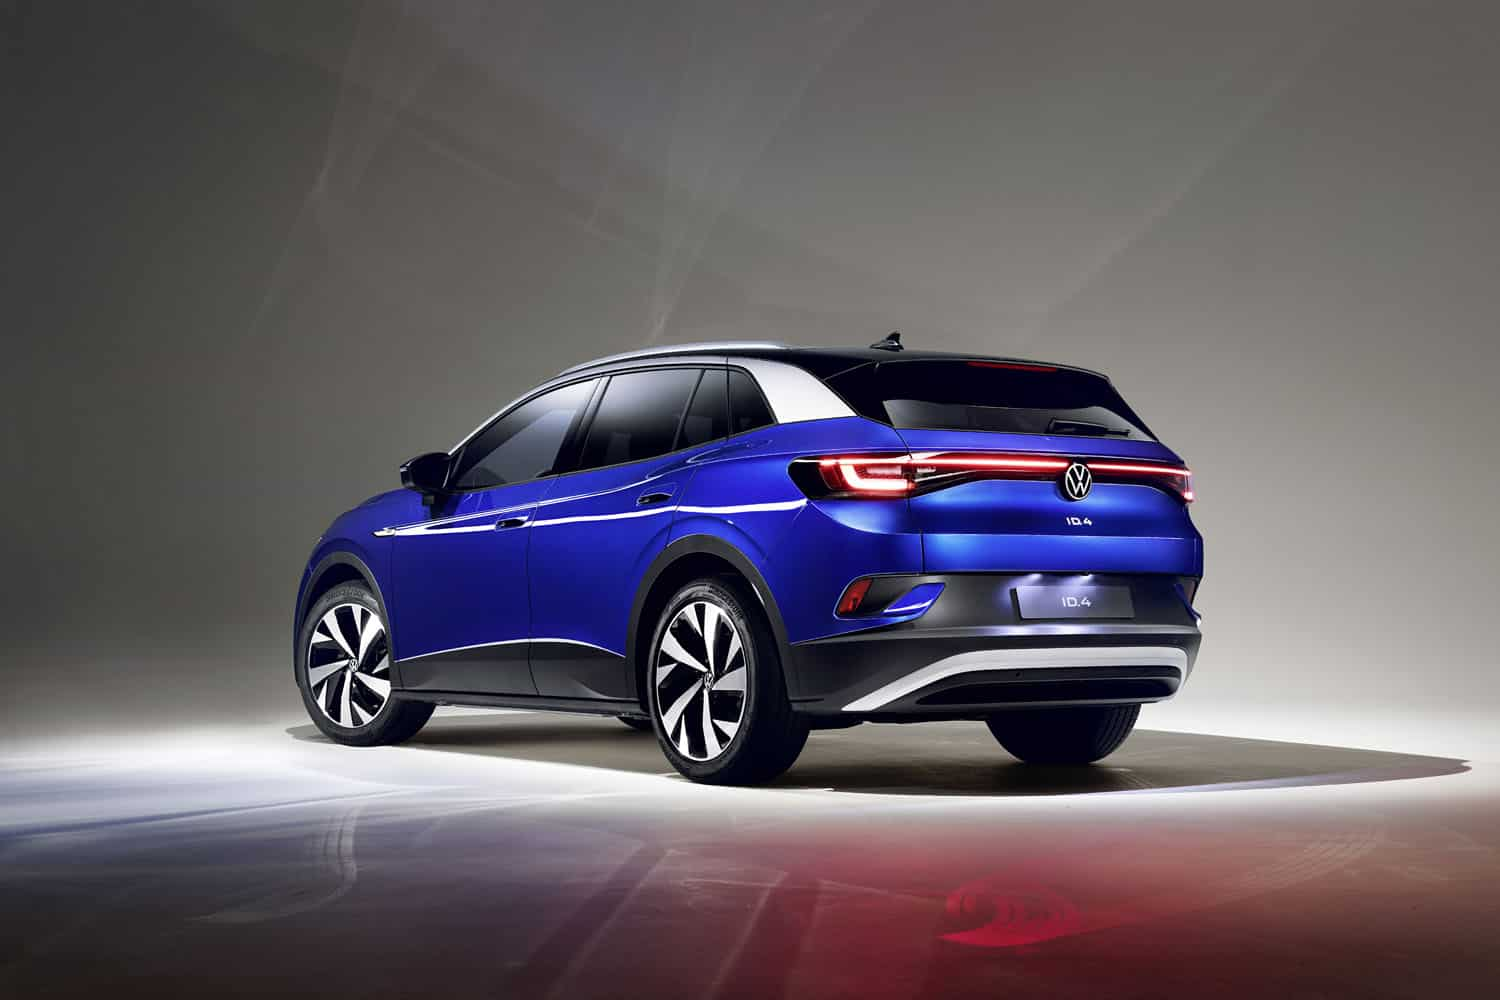 2021 VW ID-4 compact electric suv 8